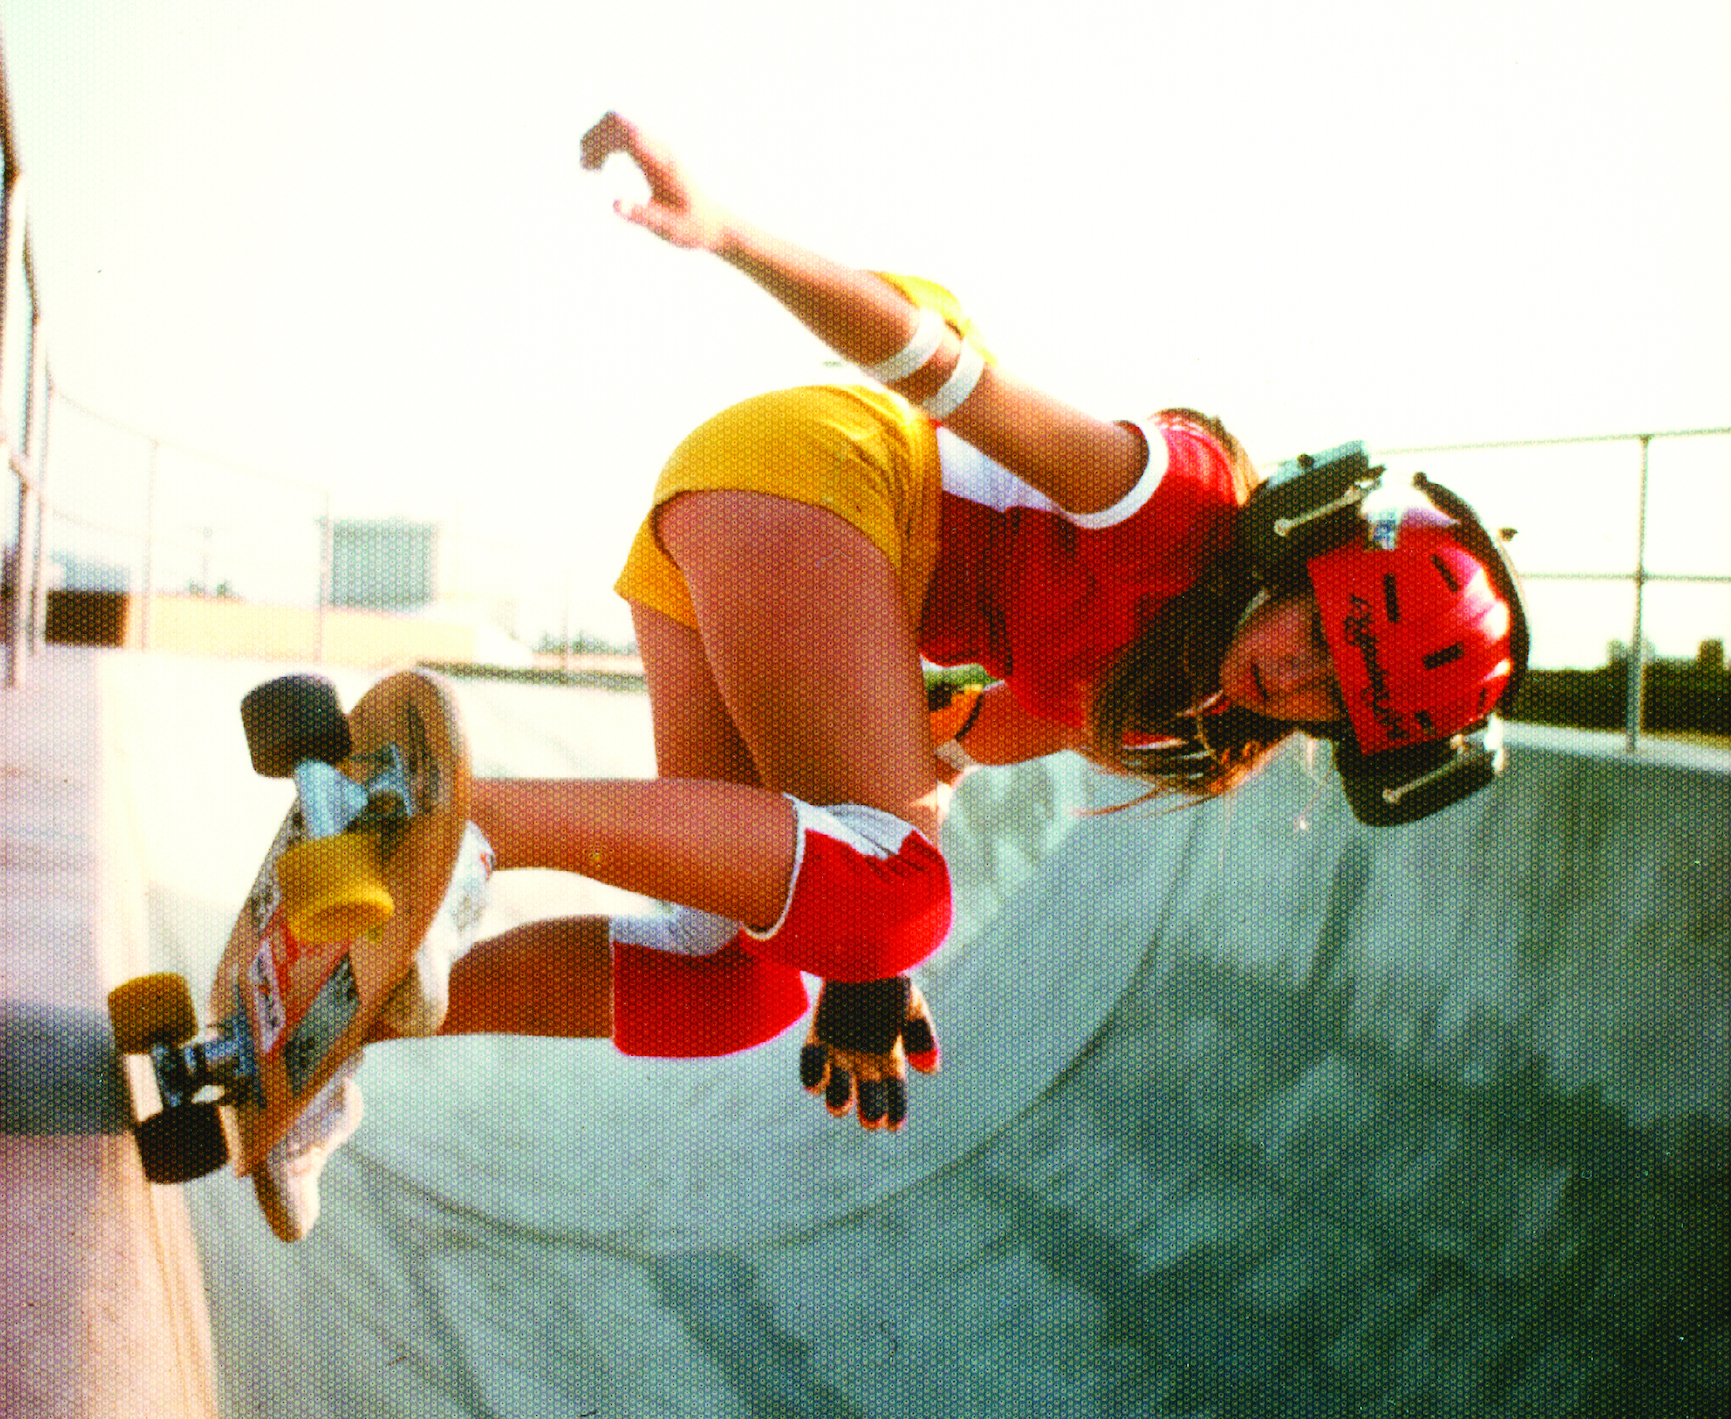 Cindy back in the day 1970's - one of the first! Image from Skateboarding hall of fame.